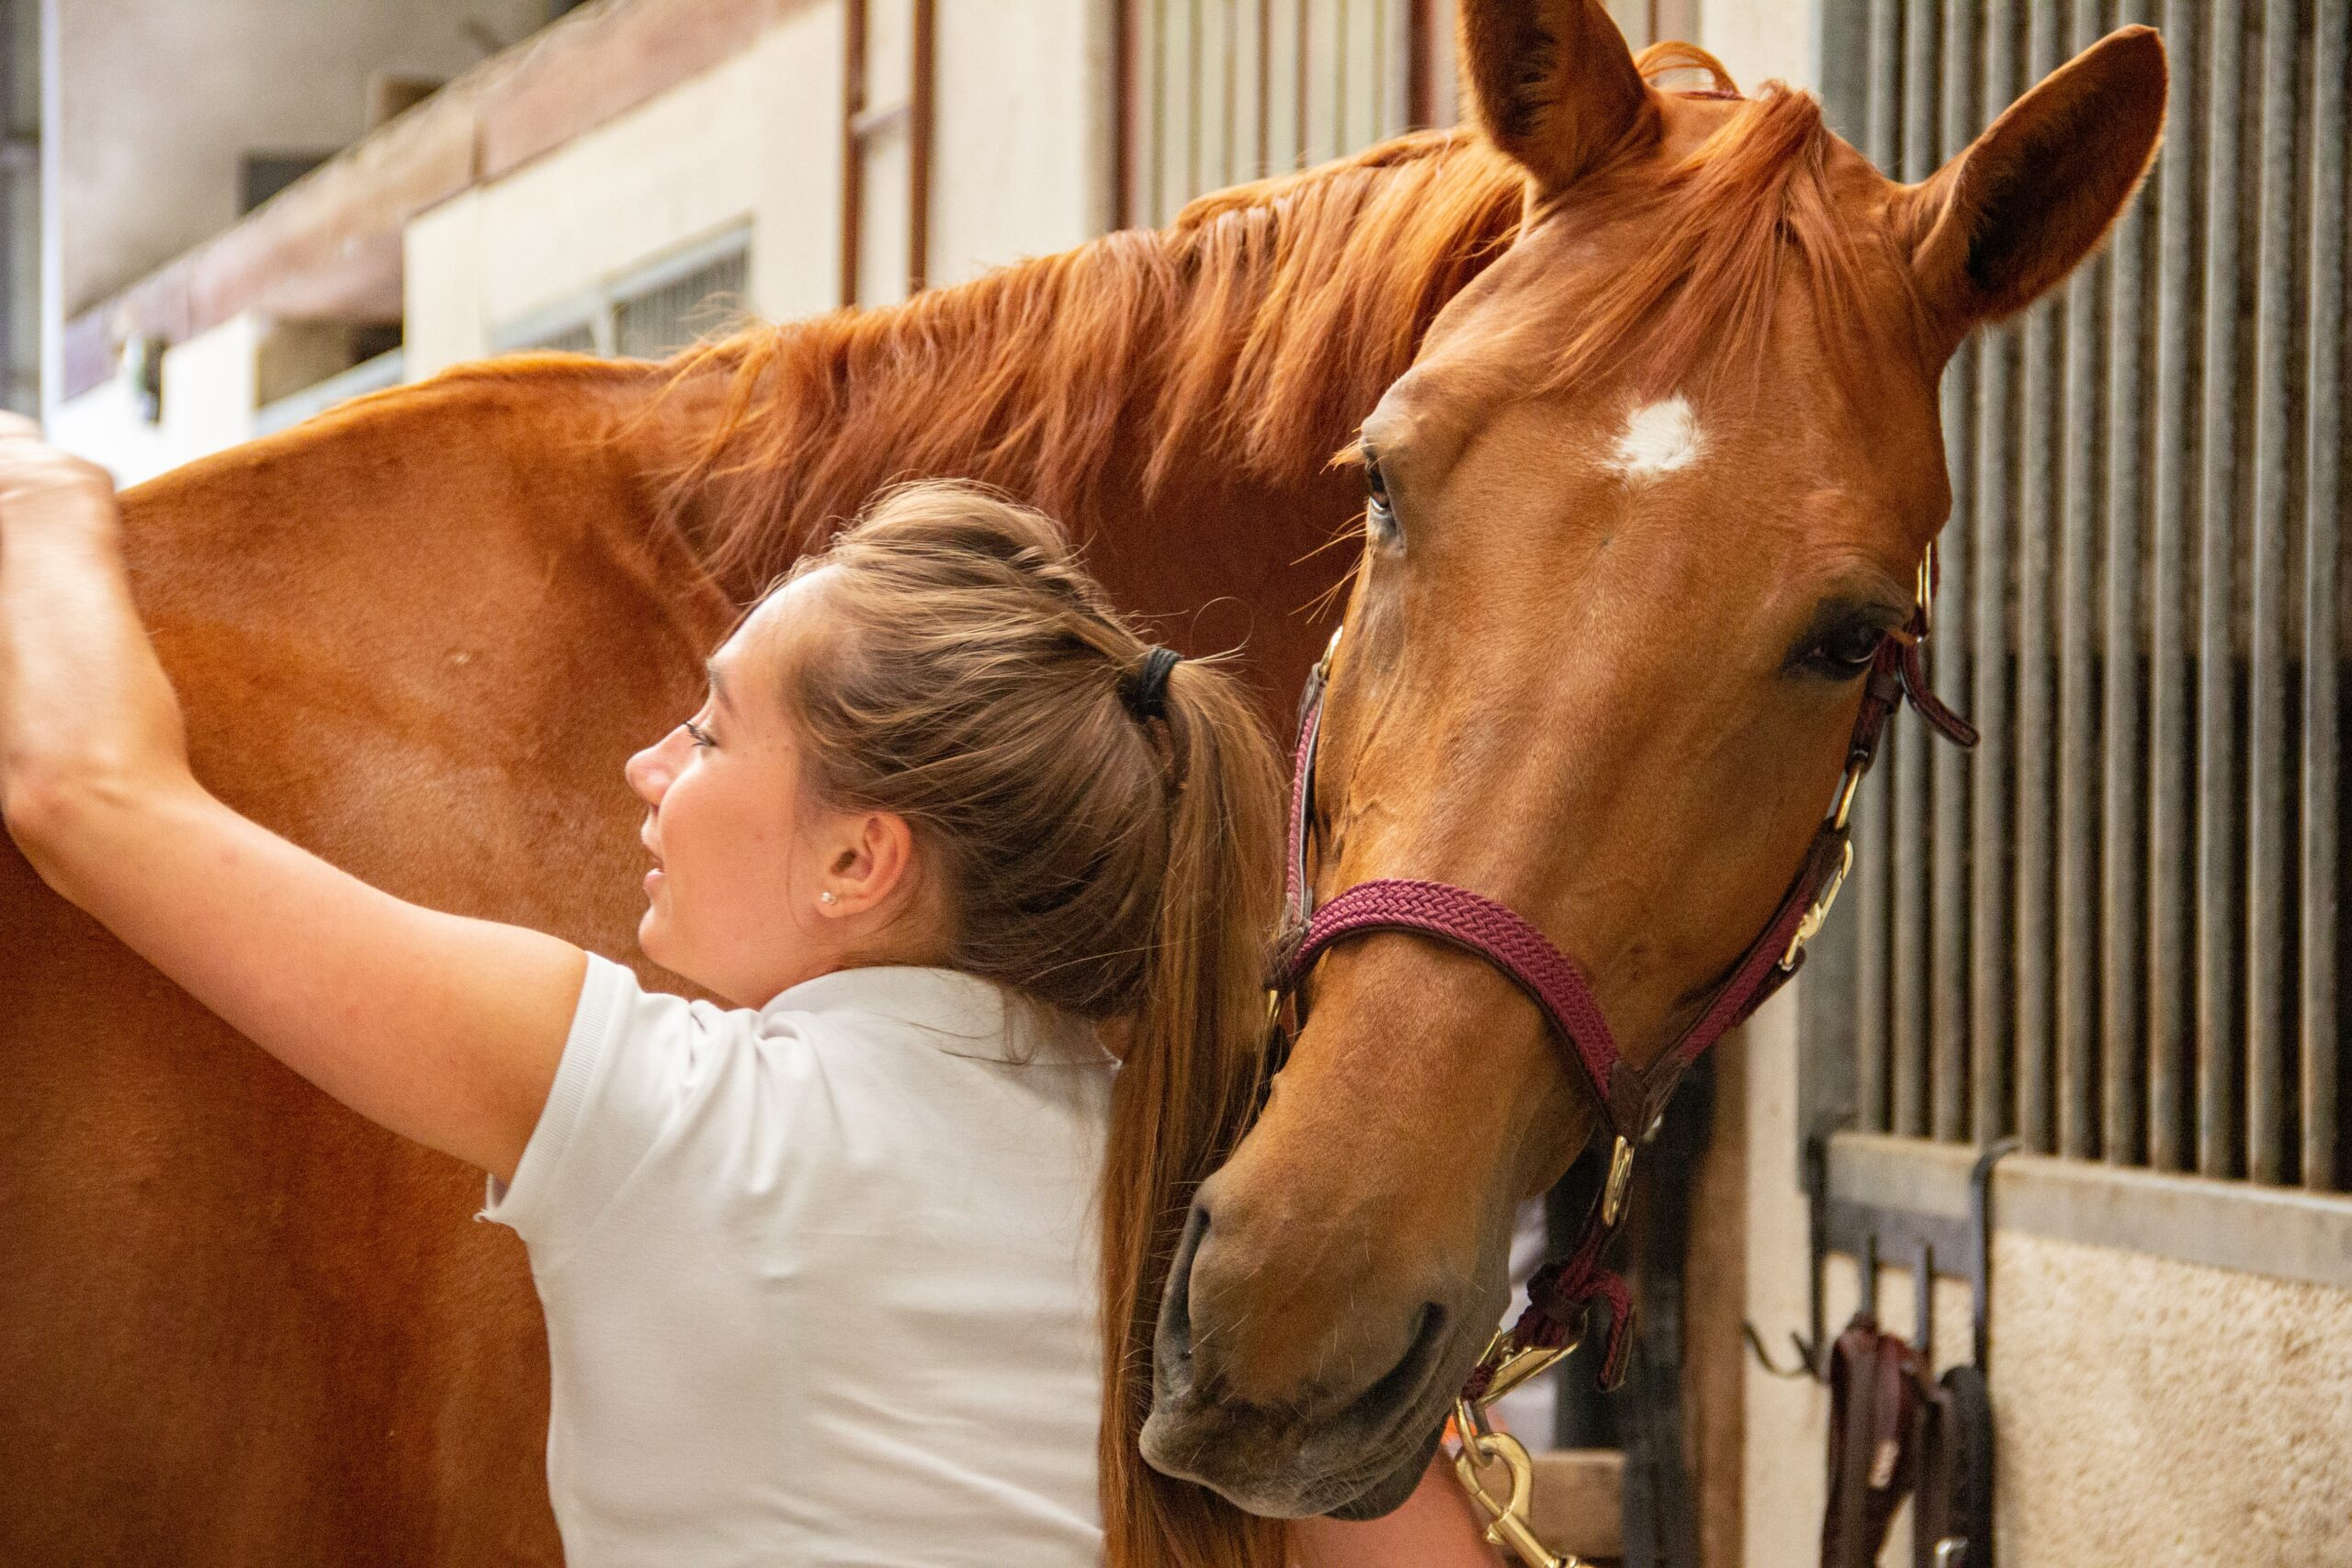 Taking Care of Horses   Animal Care   Animal Rescue Charity